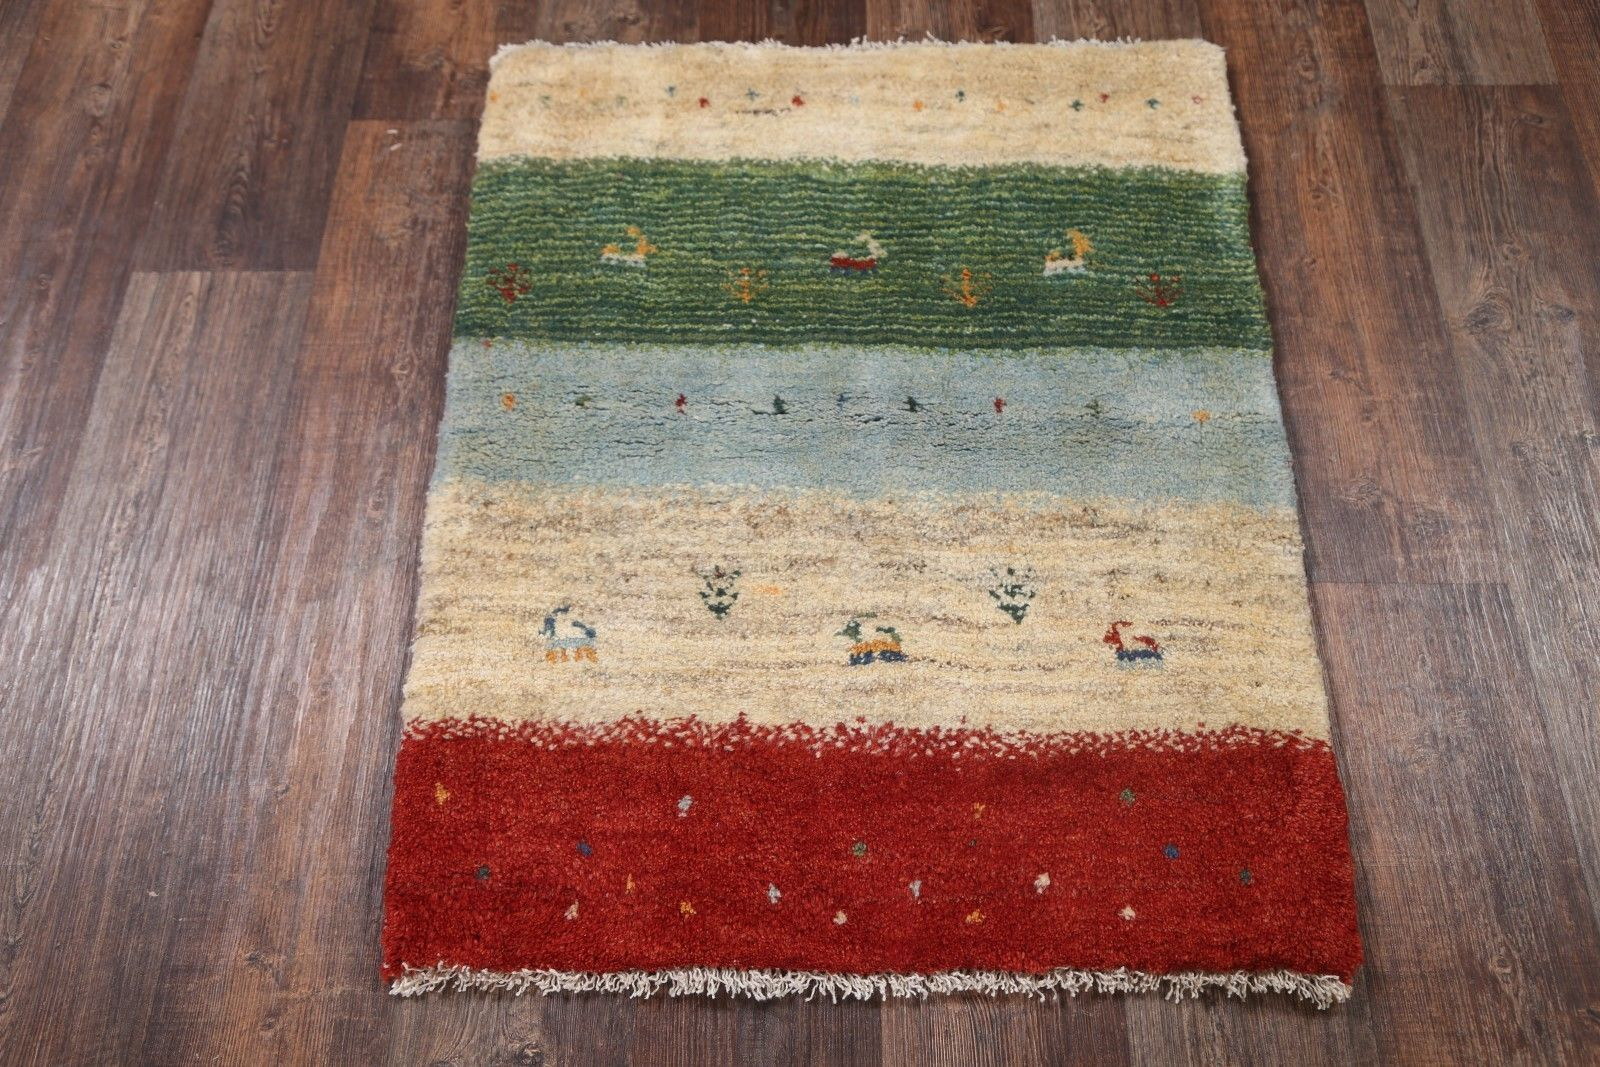 Little Figures Modern 3x4 Gabbeh Shiraz Persian Oriental Area Rug 3 6 X 2 9 In Home Garden Rugs Carpets Ebay